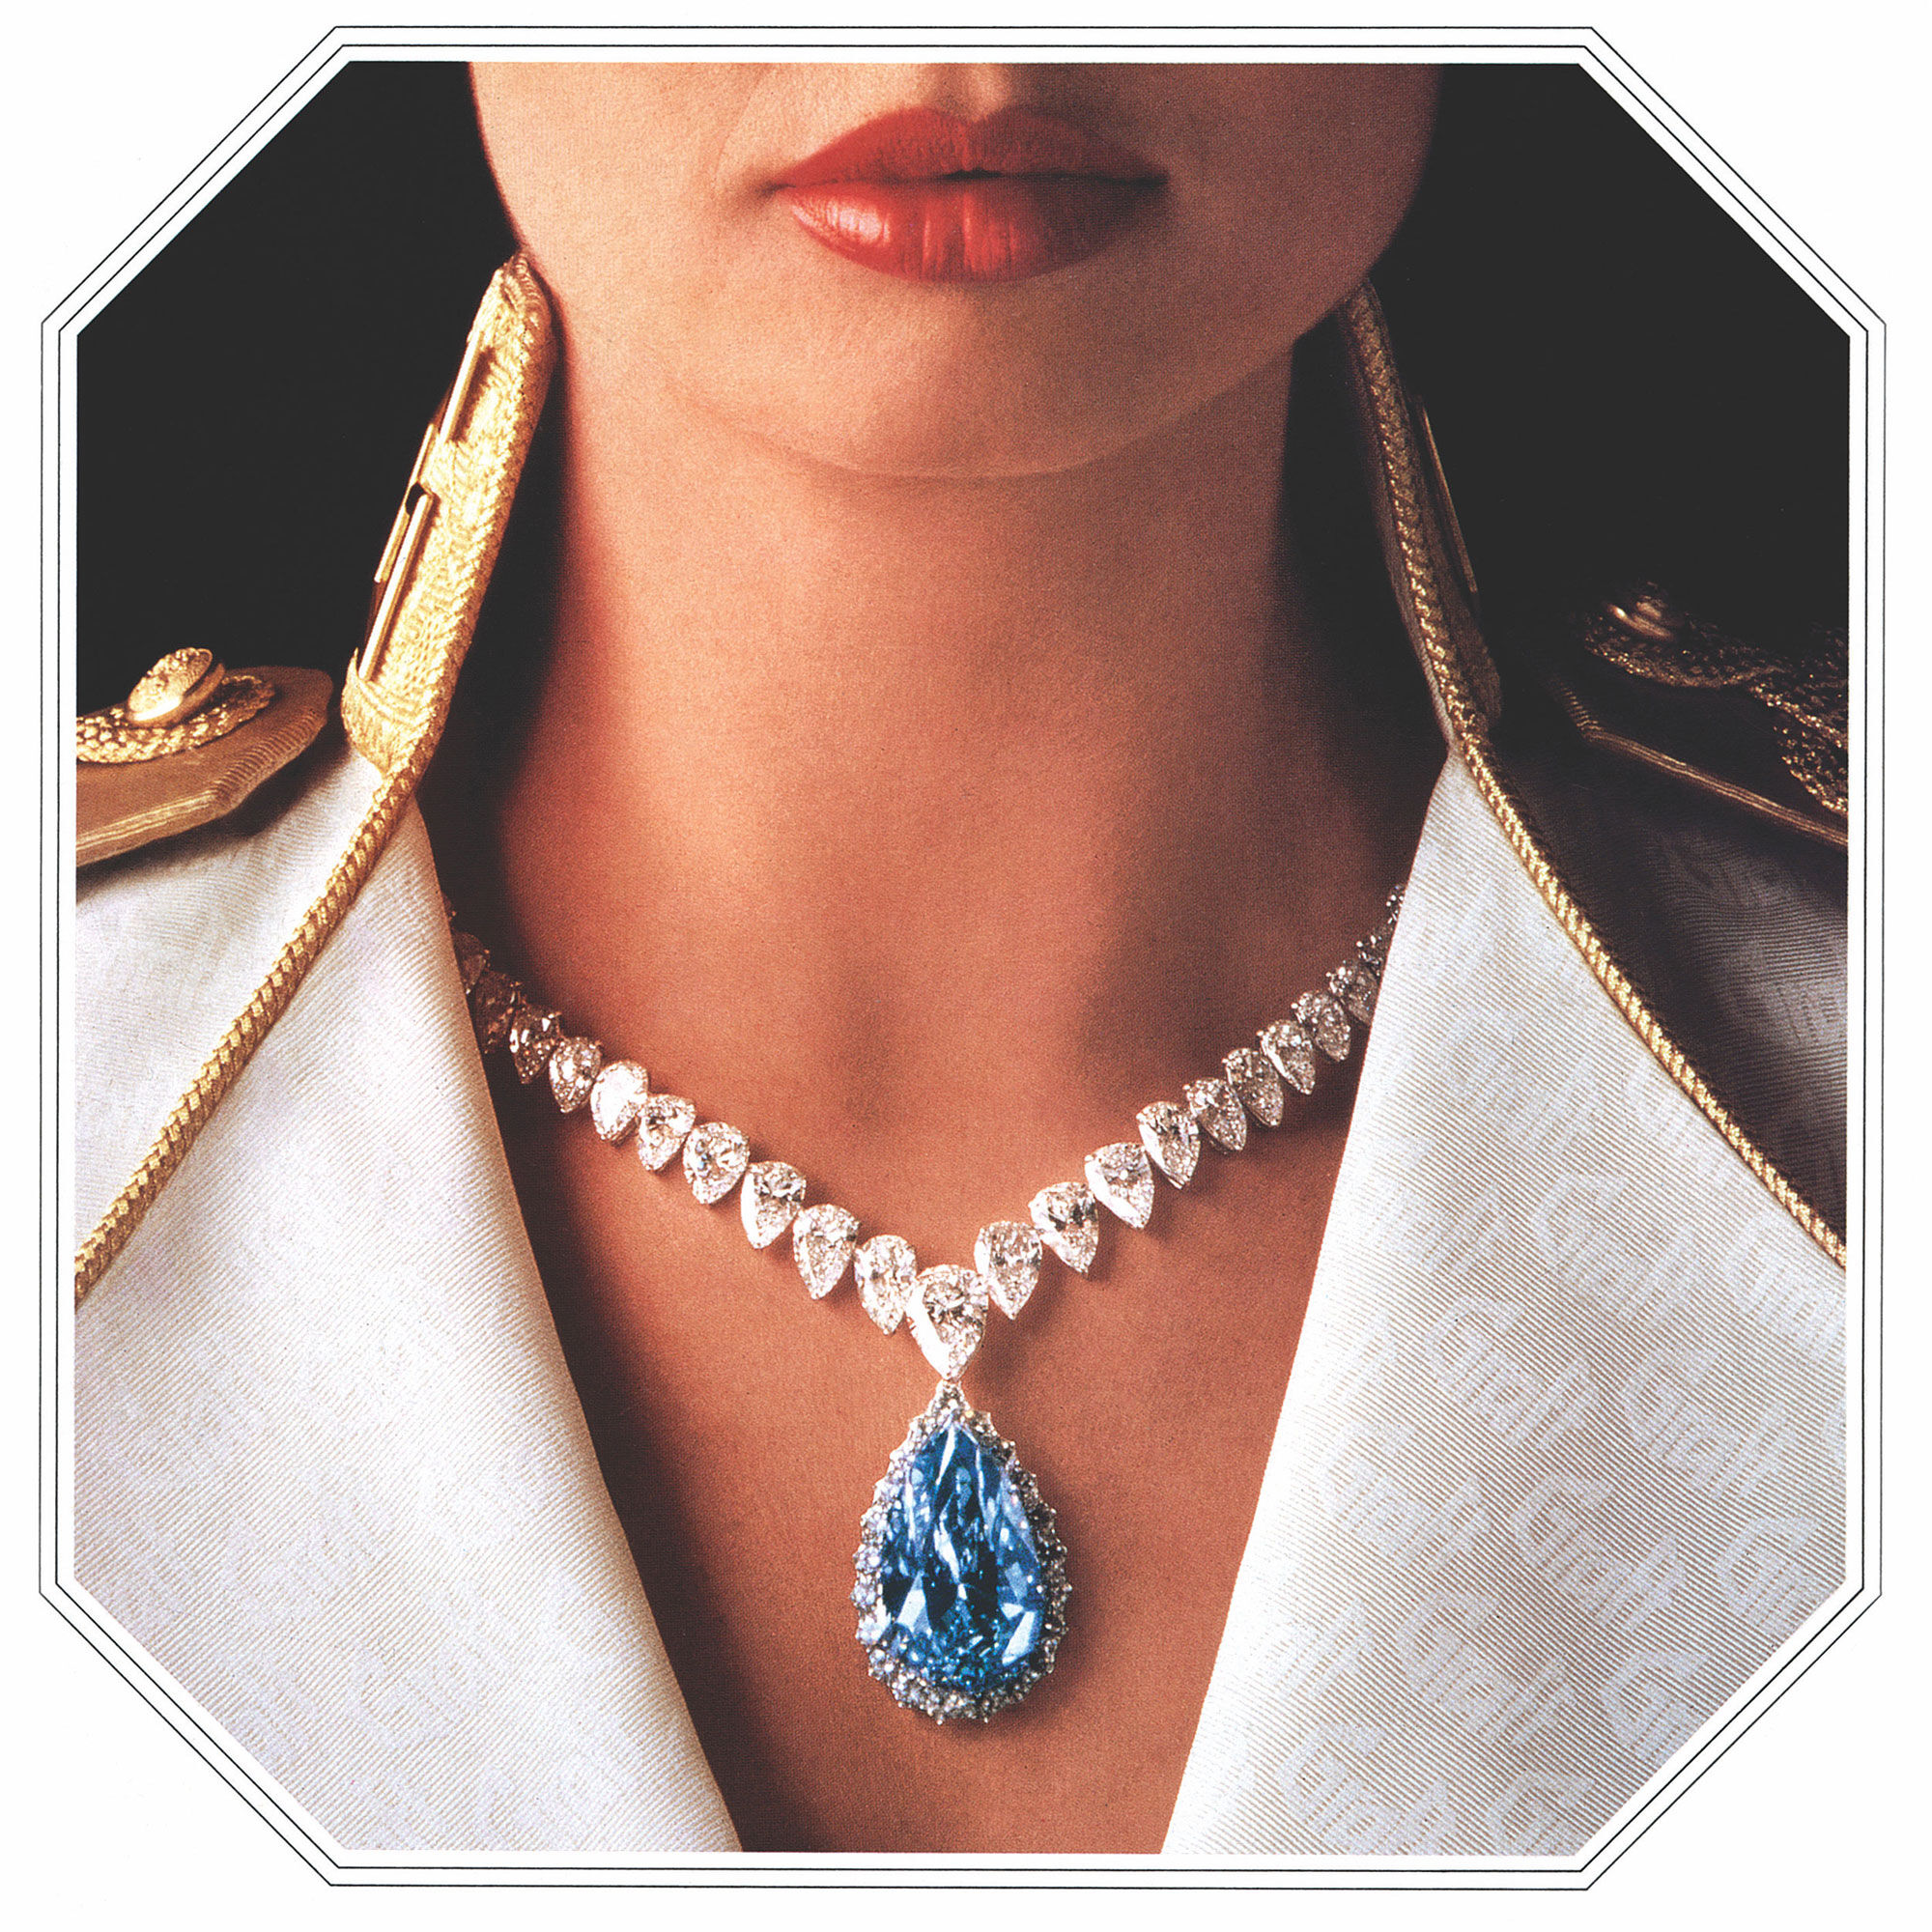 Model wearing a Graff high jewellery diamond necklace featuring pear shape blue diamond.